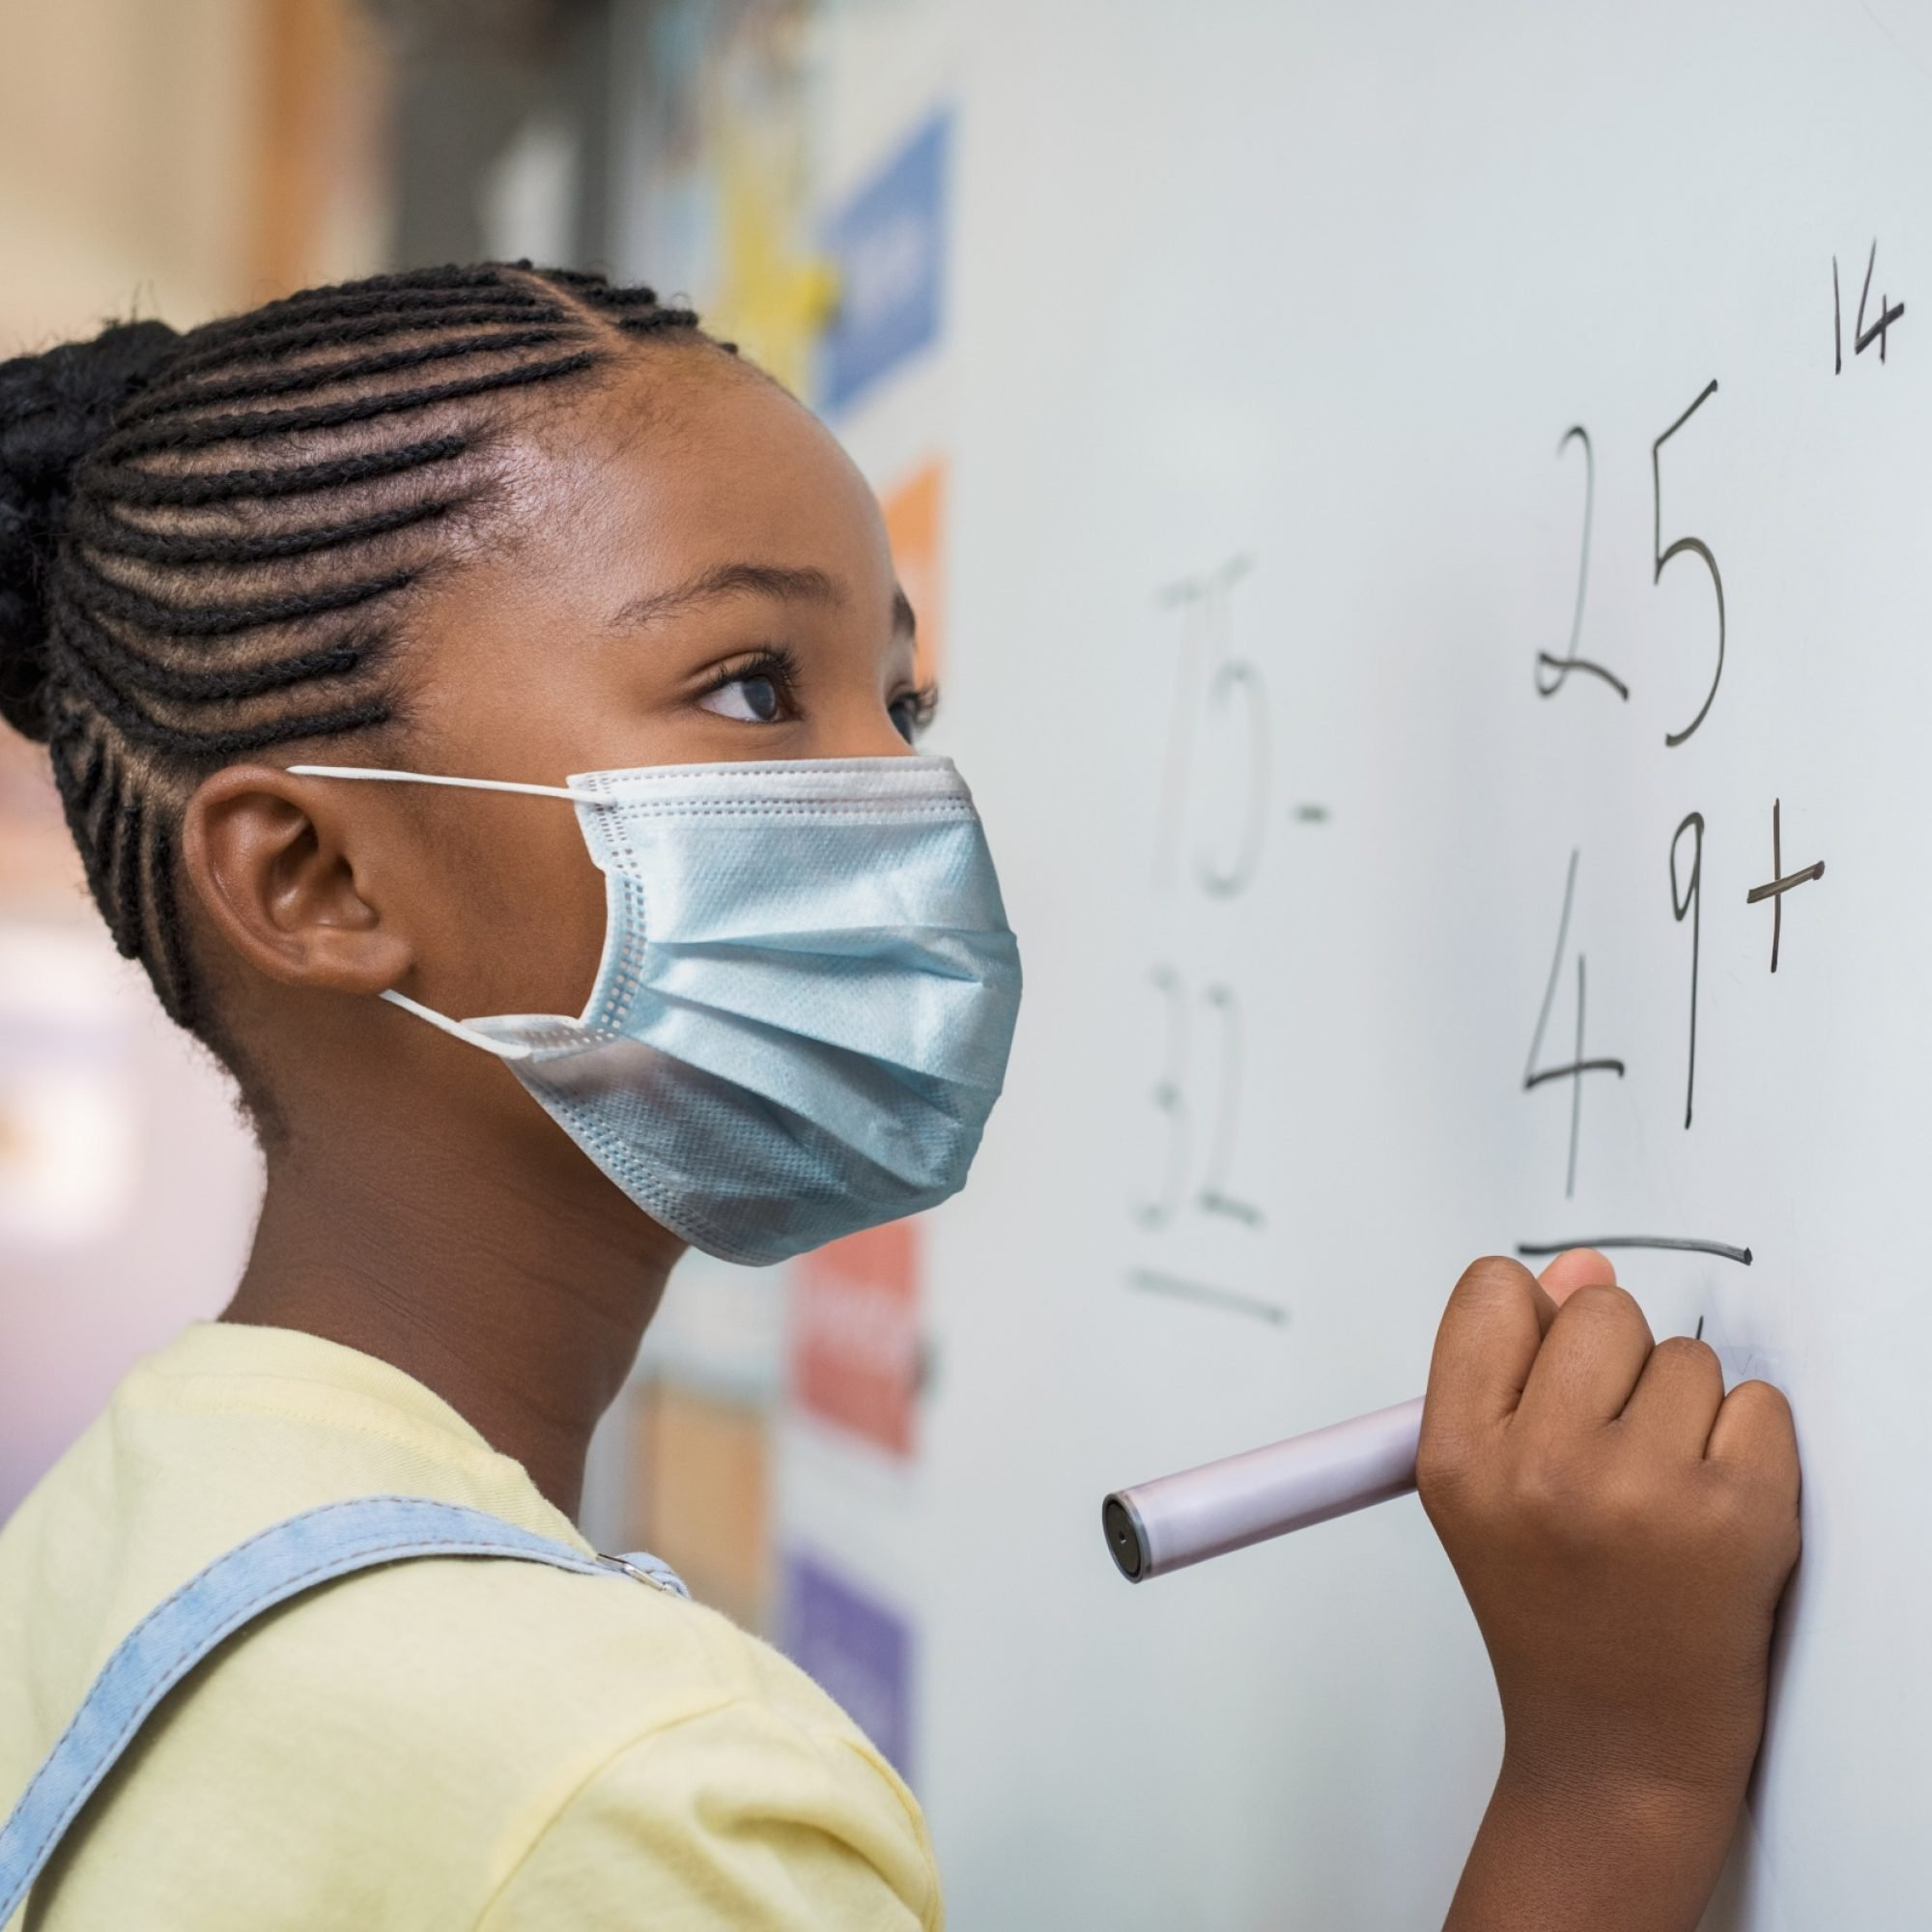 Portrait of african girl wearing face mask and writing solution of sums on white board at school. Black schoolgirl solving addition sum on white board during Covid-19 pandemic. School child thinking while doing mathematics problem and wearing surgivcal mask due to coronavirus.